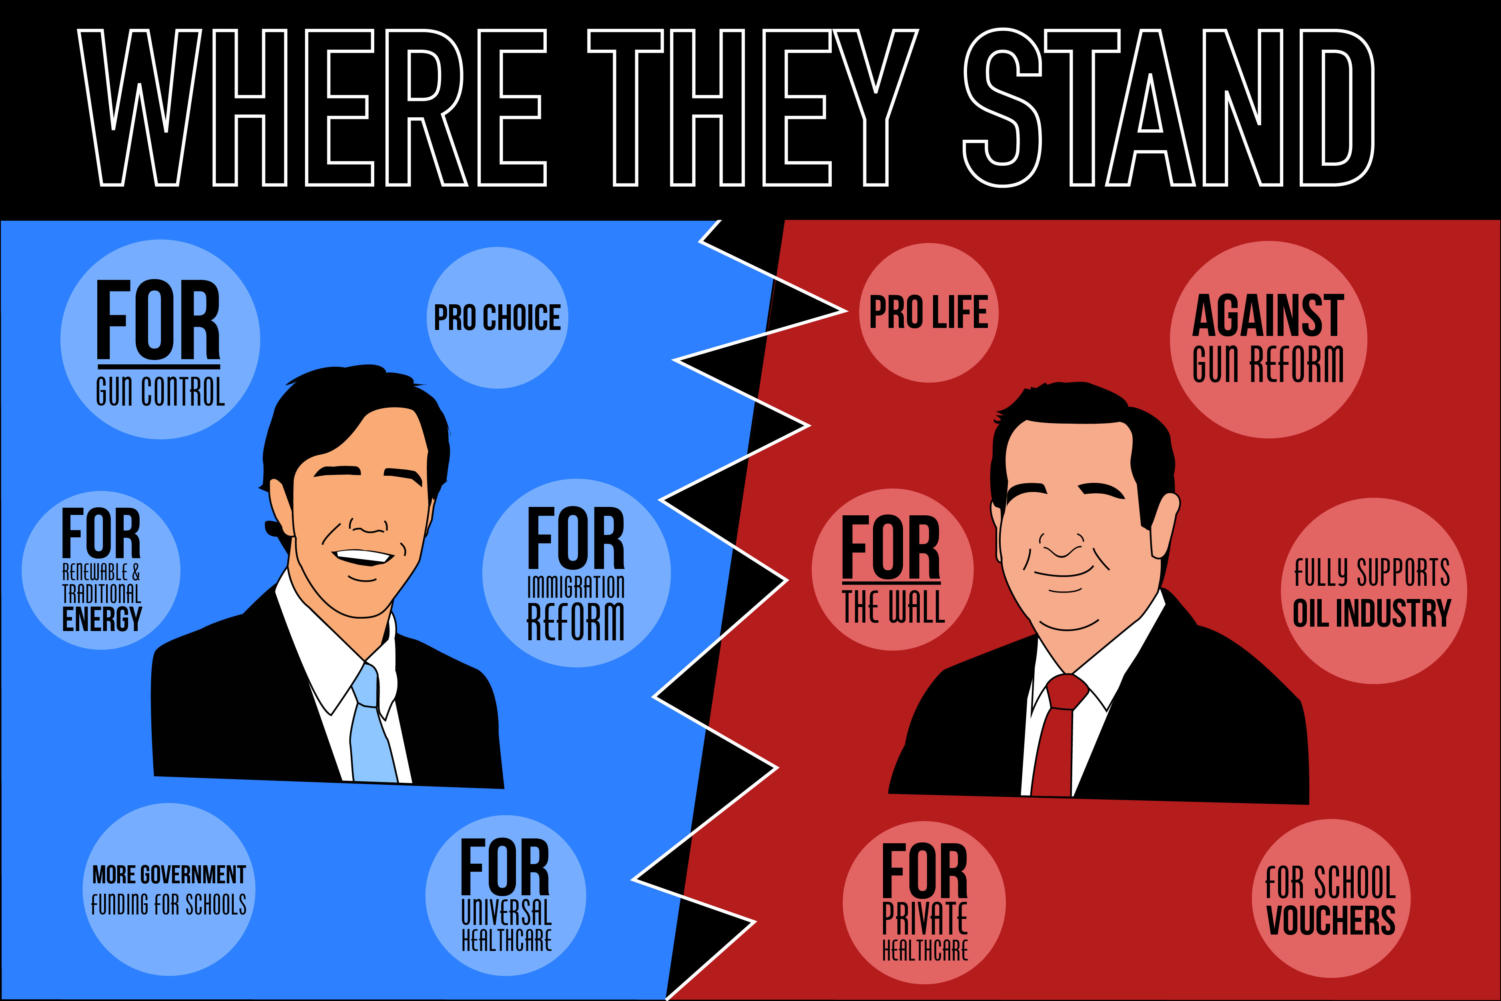 O'Rourke and Cruz have taken stands on numerous crucial issues, having very different approaches to these issues. These are just some of the issues the candidates have represented on their platform. Graphic by Carson Allen